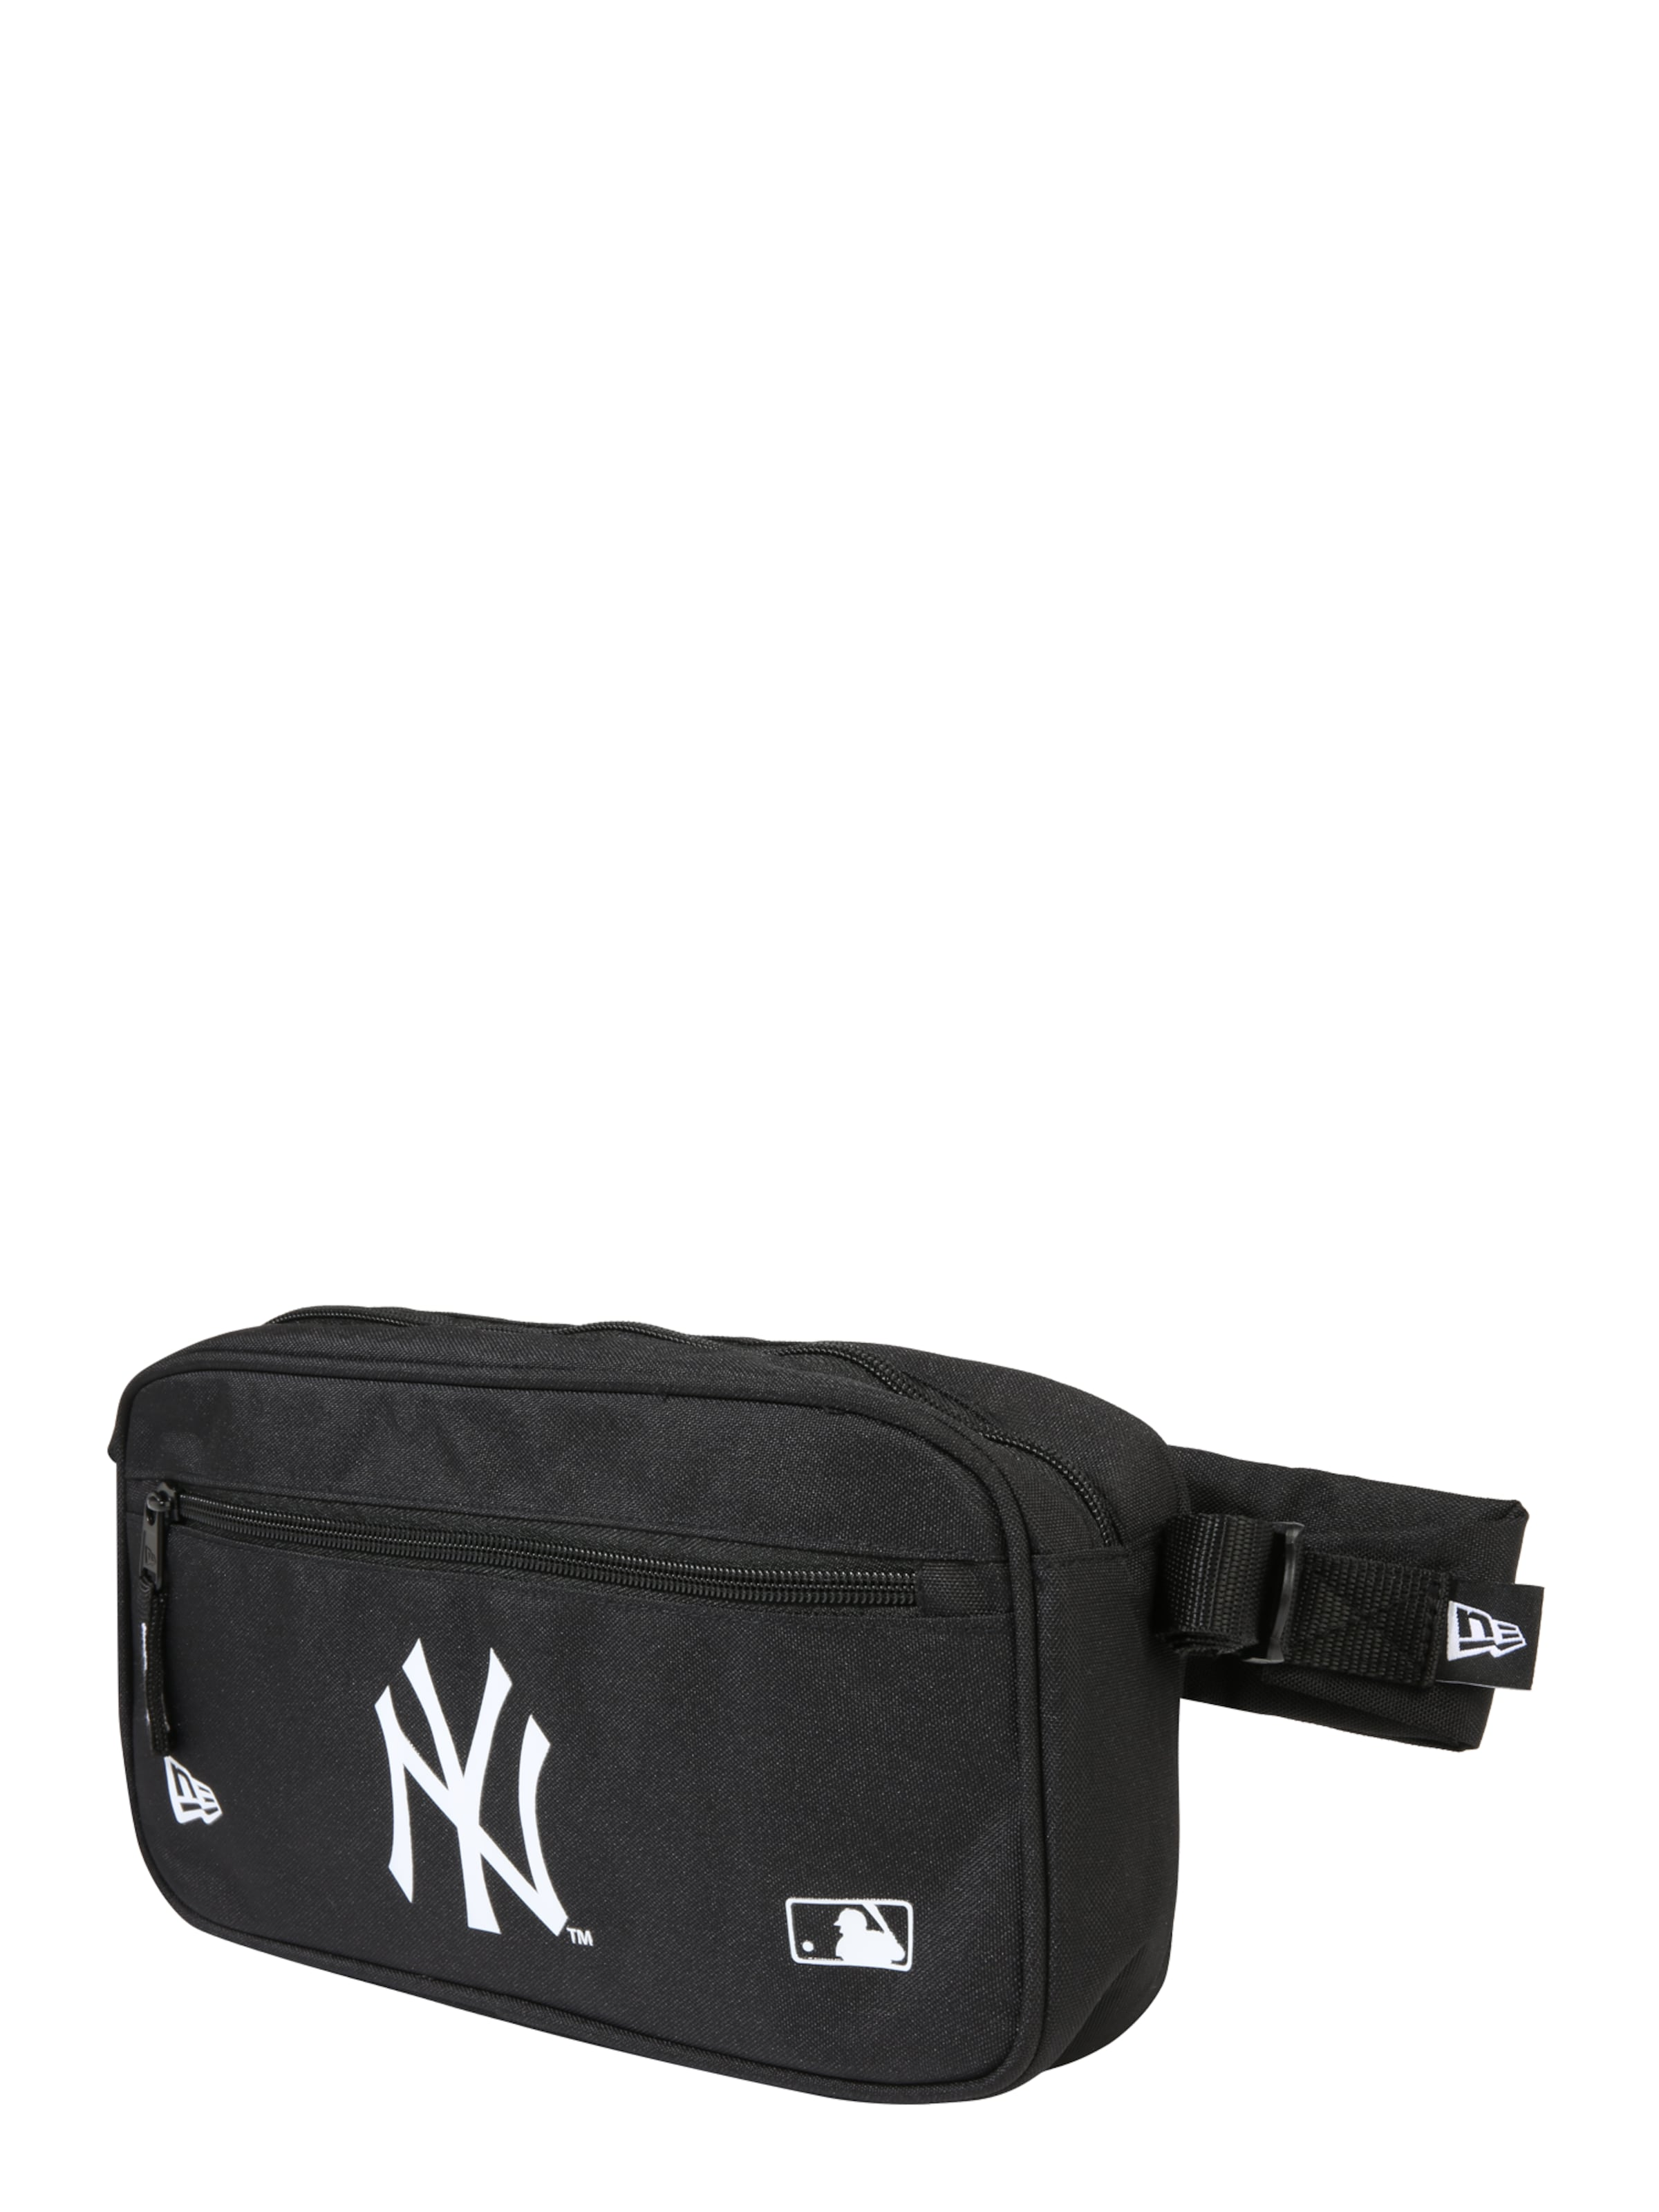 Body New Heuptas 'mlb Bag' In Zwart Era Pwk8nNOX0